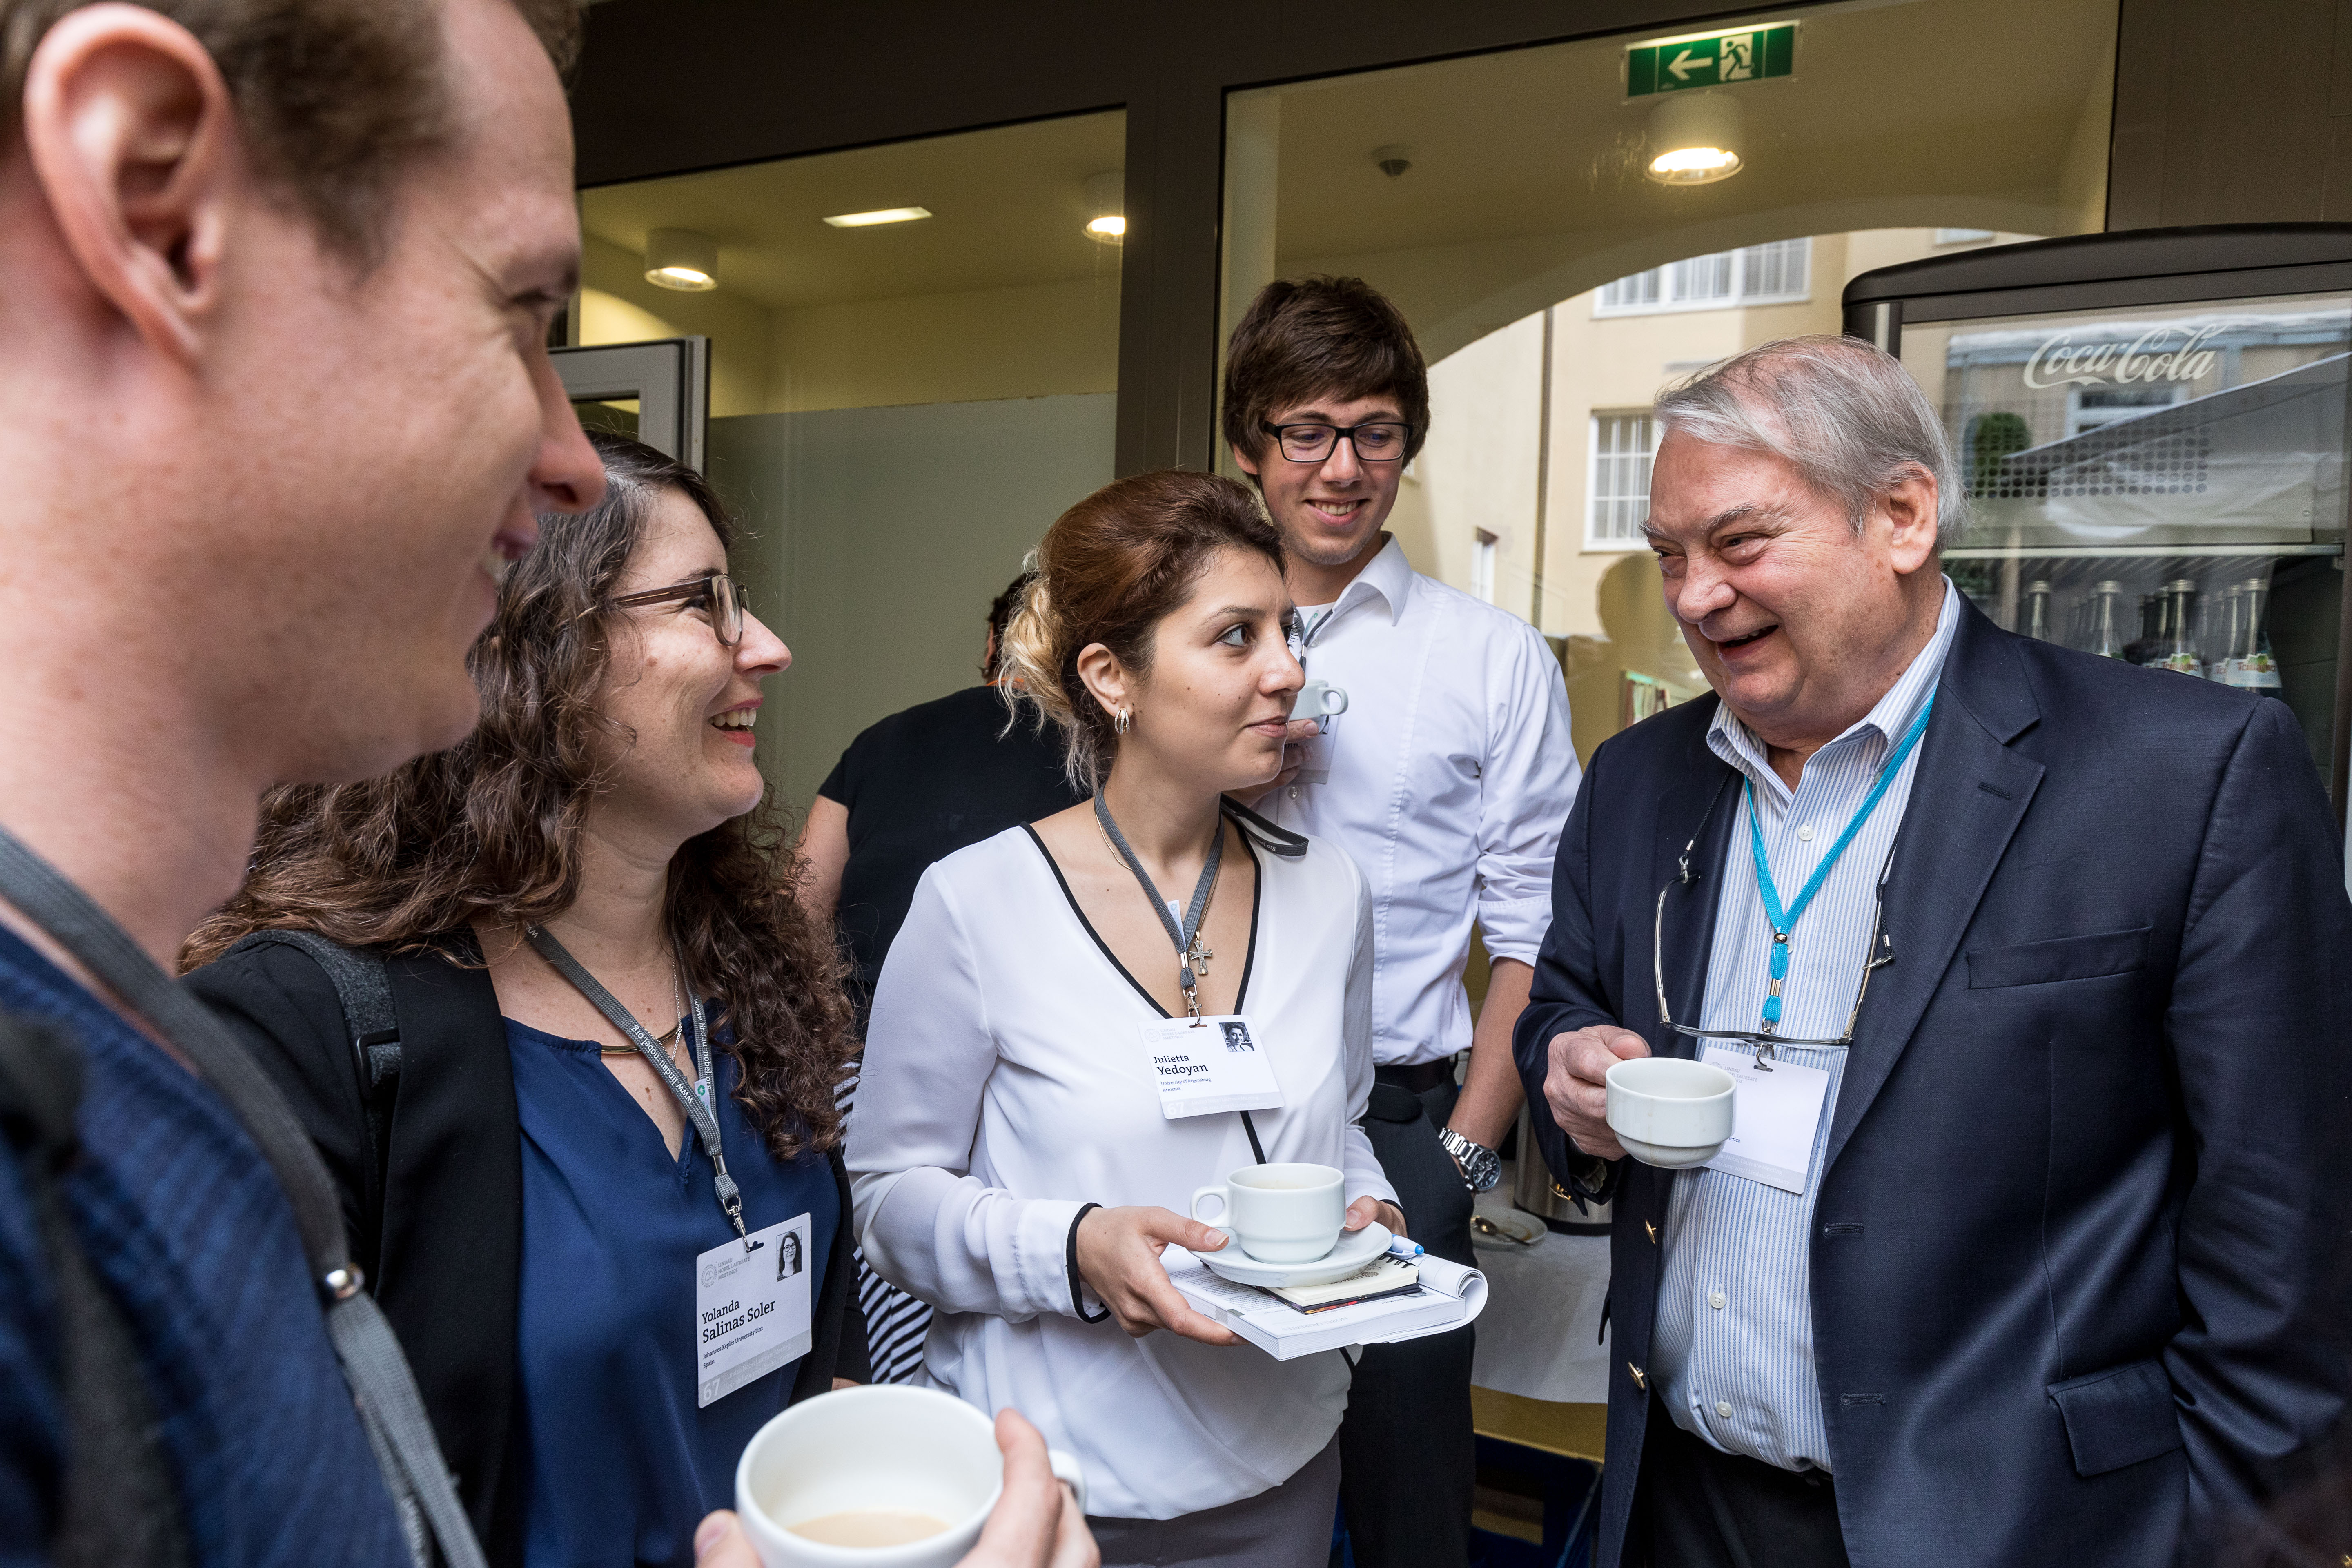 67th Lindau Nobel Laureate Meeting Chemistry, 25.06.2017 - 30.06.2017, Lindau, Germany, Picture/Credit: Christian Flemming/Lindau Nobel Laureate Meetings Ferid Murad in talk with young researchers